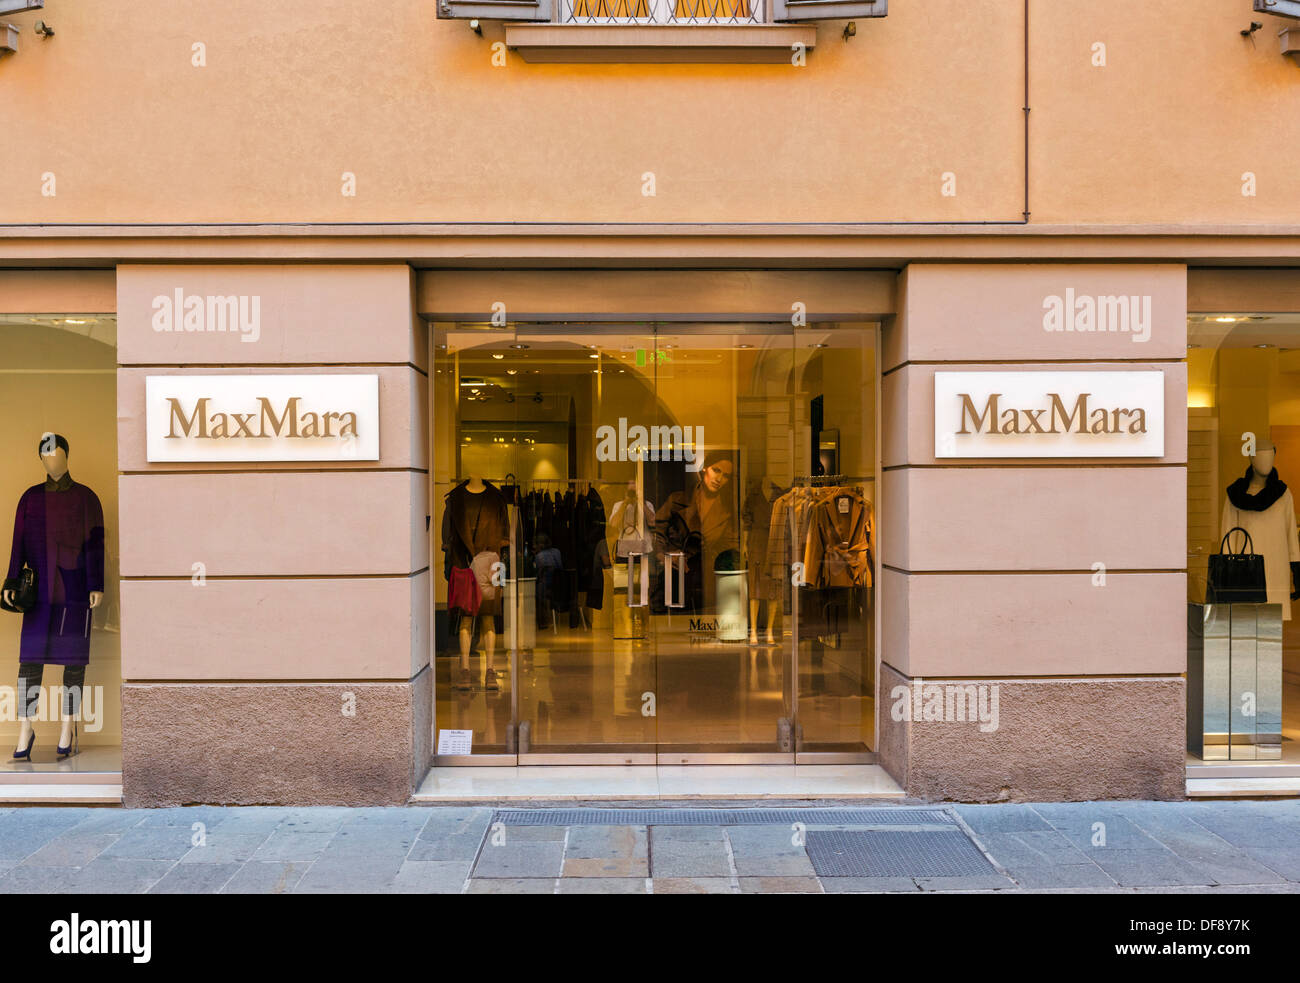 Max Mara Stock Photos & Max Mara Stock Images - Alamy